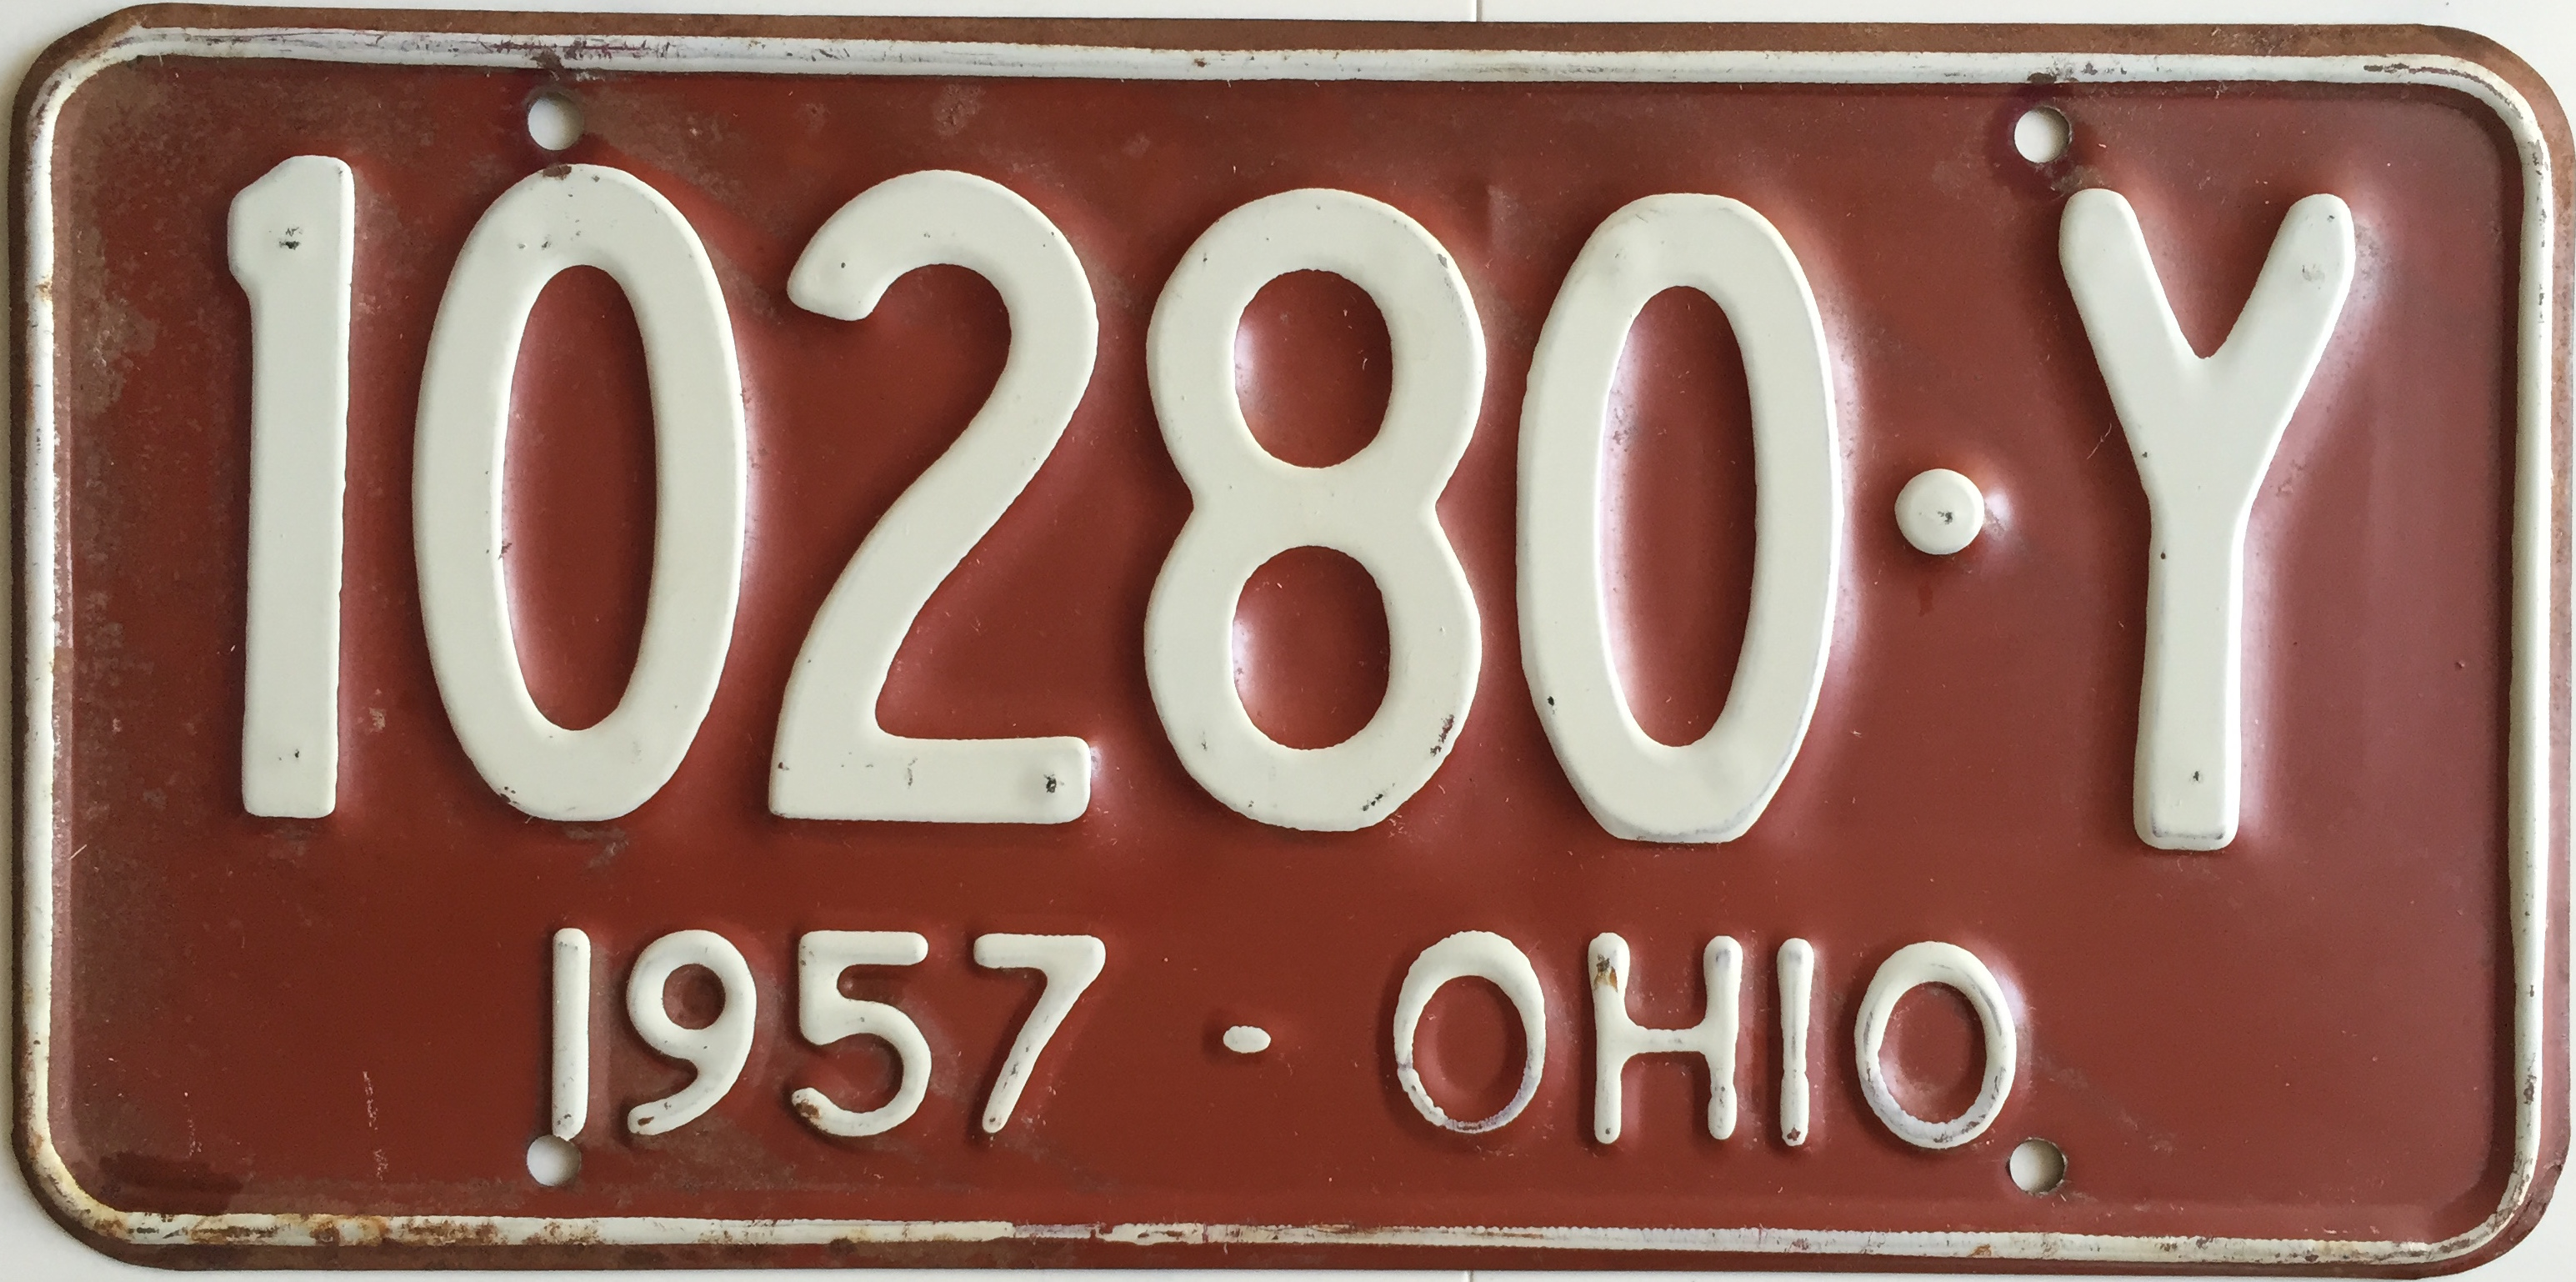 File:1957 Ohio license plate.JPG - Wikimedia Commons